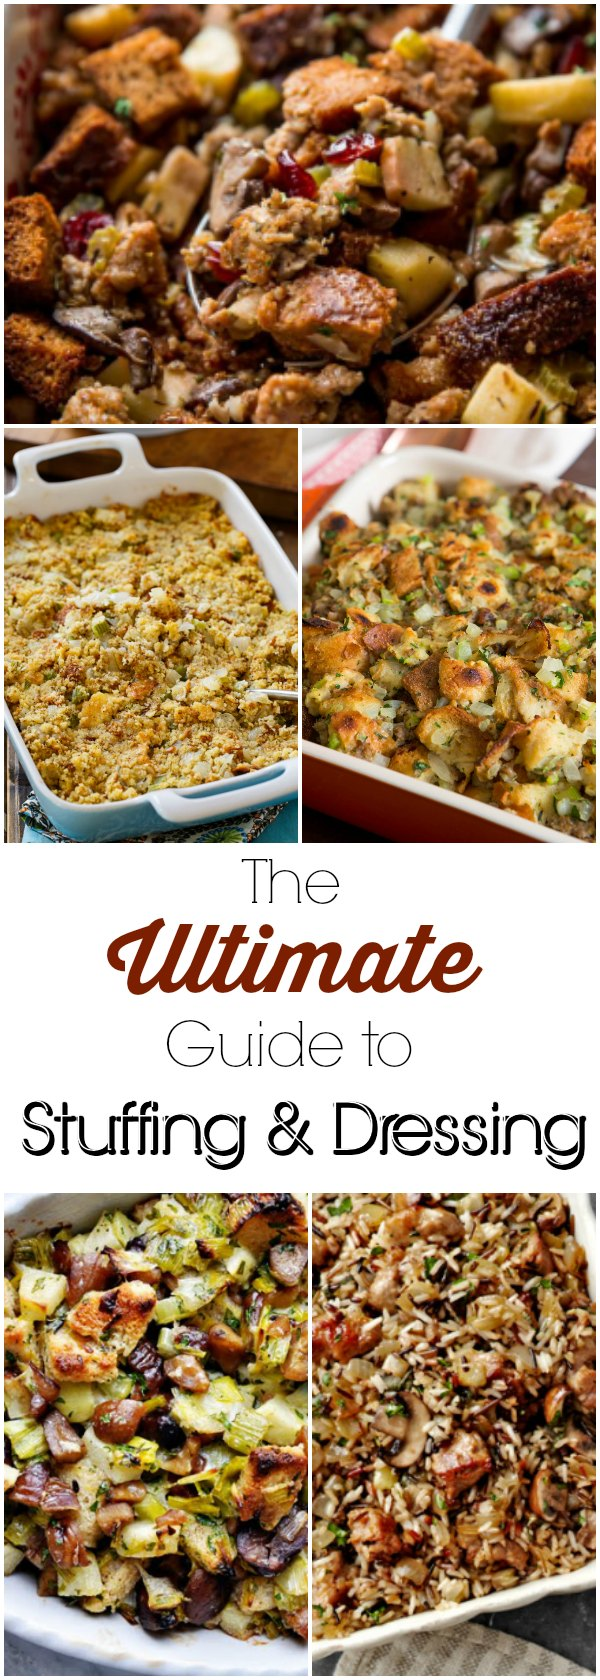 The Ultimate Guide to Stuffing and Dressing | If Thanksgiving sides are your favorite part of Thanksgiving then you are going to love this ultimate guide to stuffing recipes and dressing recipes. Thanksgiving stuffing recipes can also be Thanksgiving dressing recipes ...do you know the difference? We've got everything you need to know about making an amazing stuffing recipe for Thanksgiving dinner.